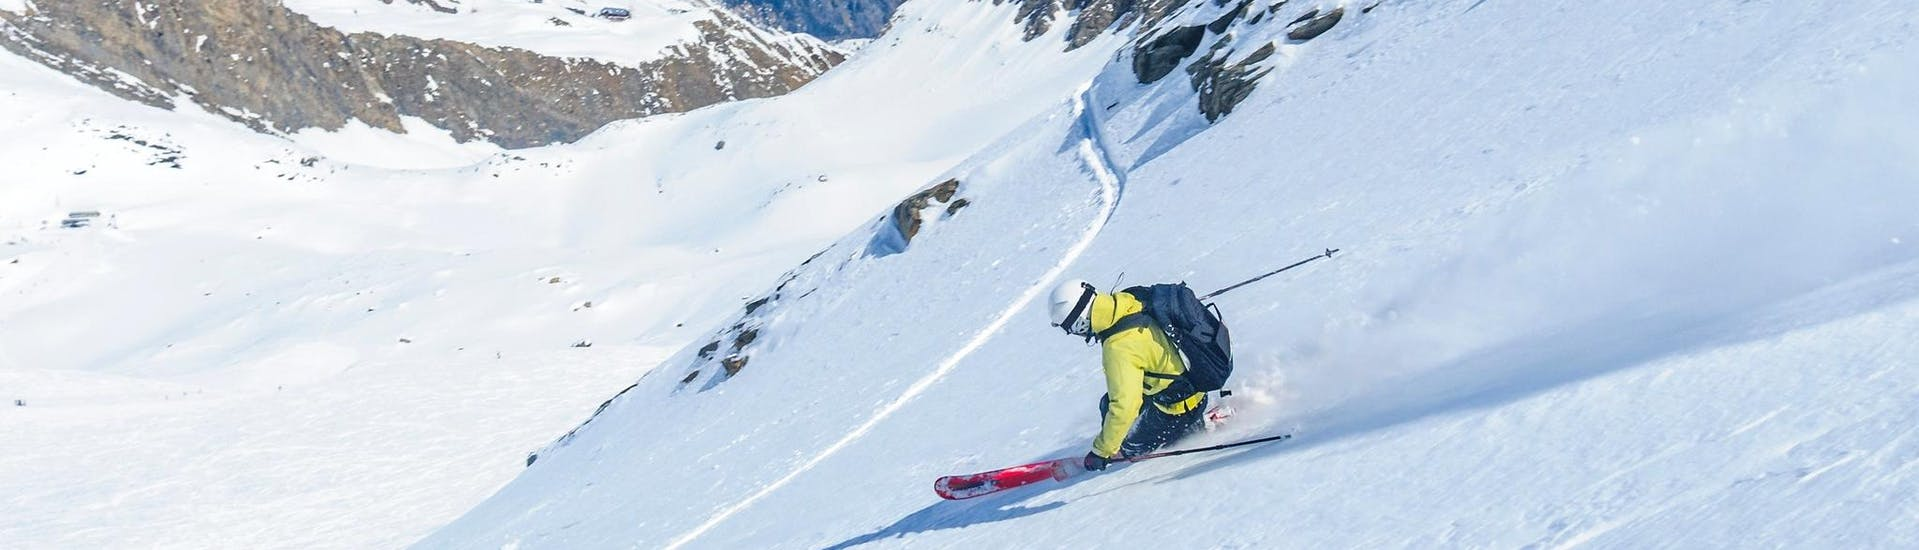 A freeride skier is skiing through the powder snow during one of the Freeriding Private for Adults – Beginner organised by Mountain Sports Mayrhofen.